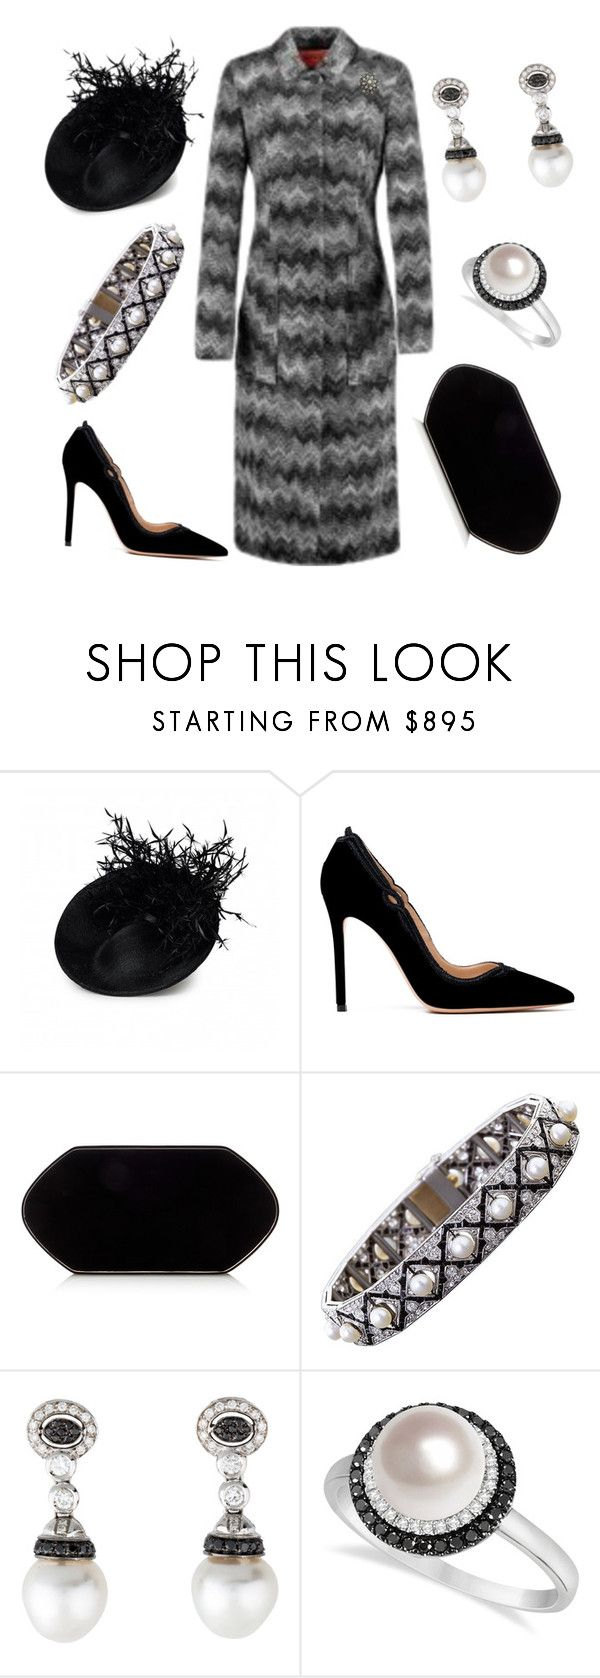 """Laying Memorial Wreath"" by nmccullough ❤ liked on Polyvore featuring Gianvito Rossi, Hunting Season and Allurez"